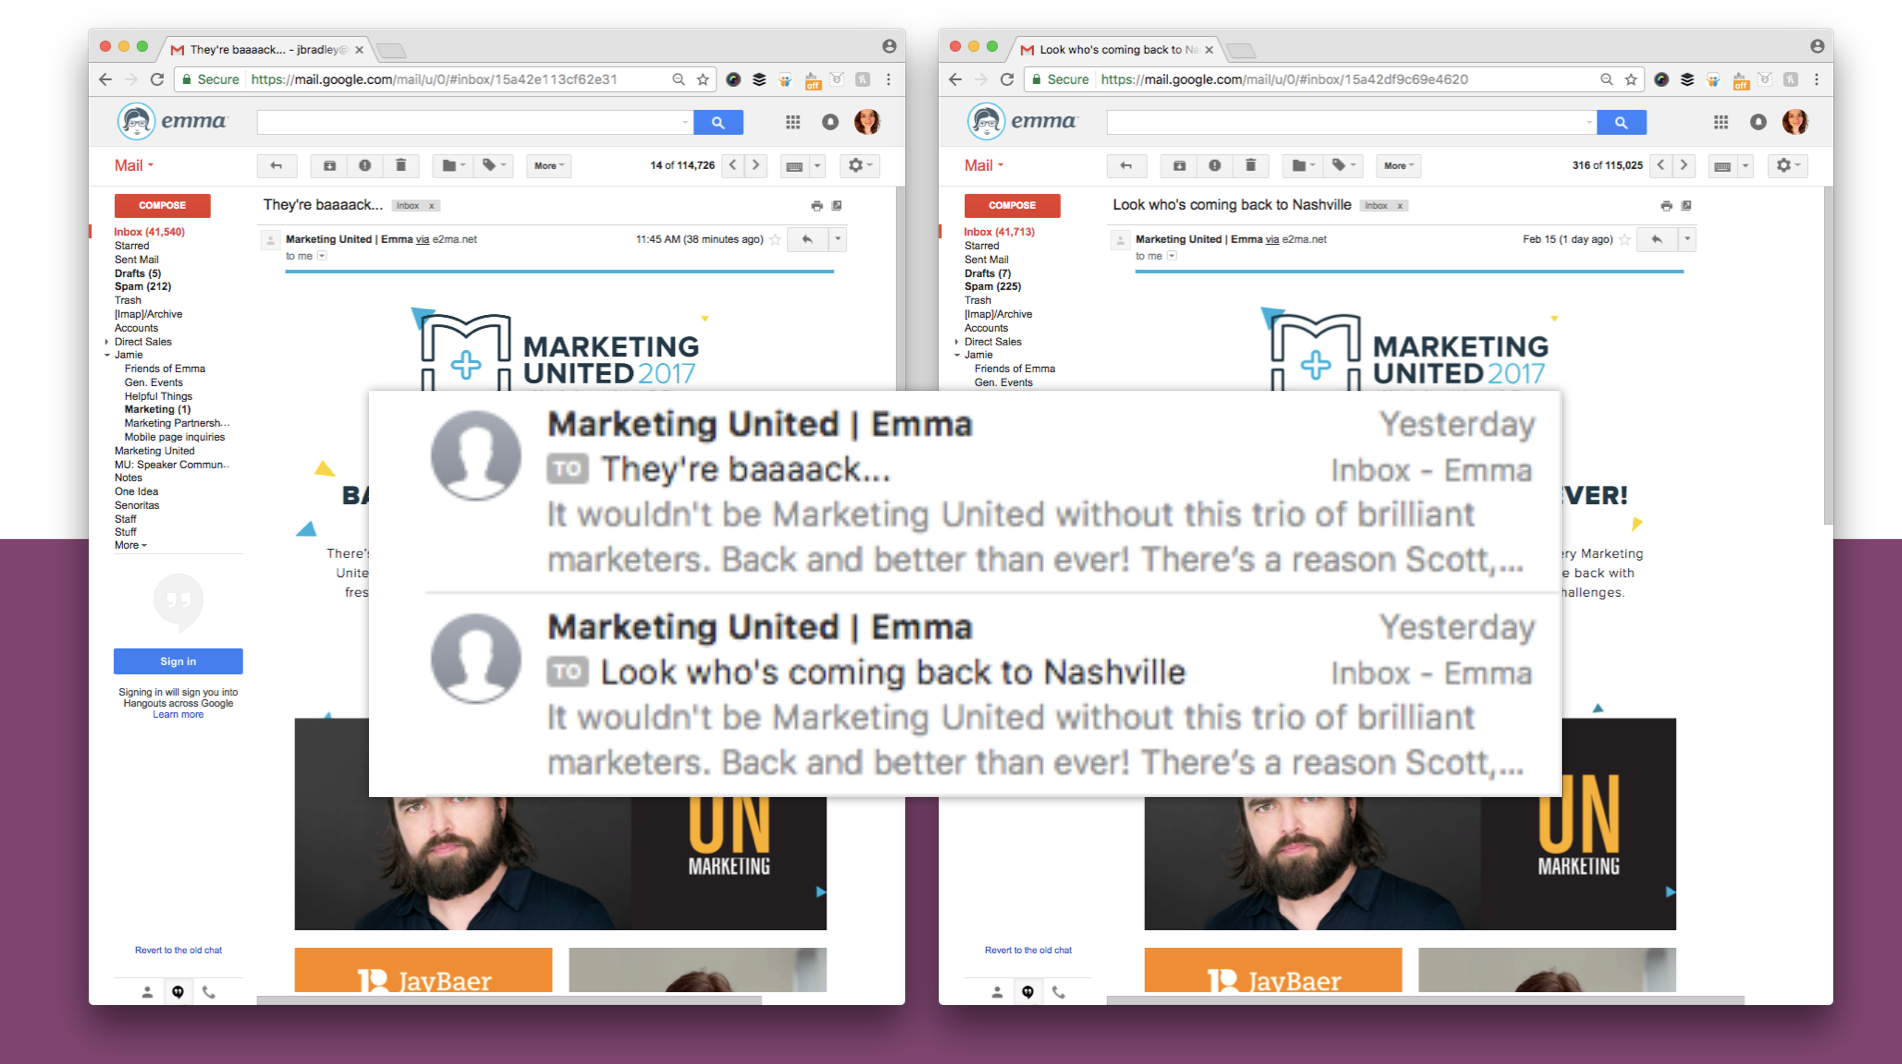 Here, we tried two different subject lines for a Marketing United campaign